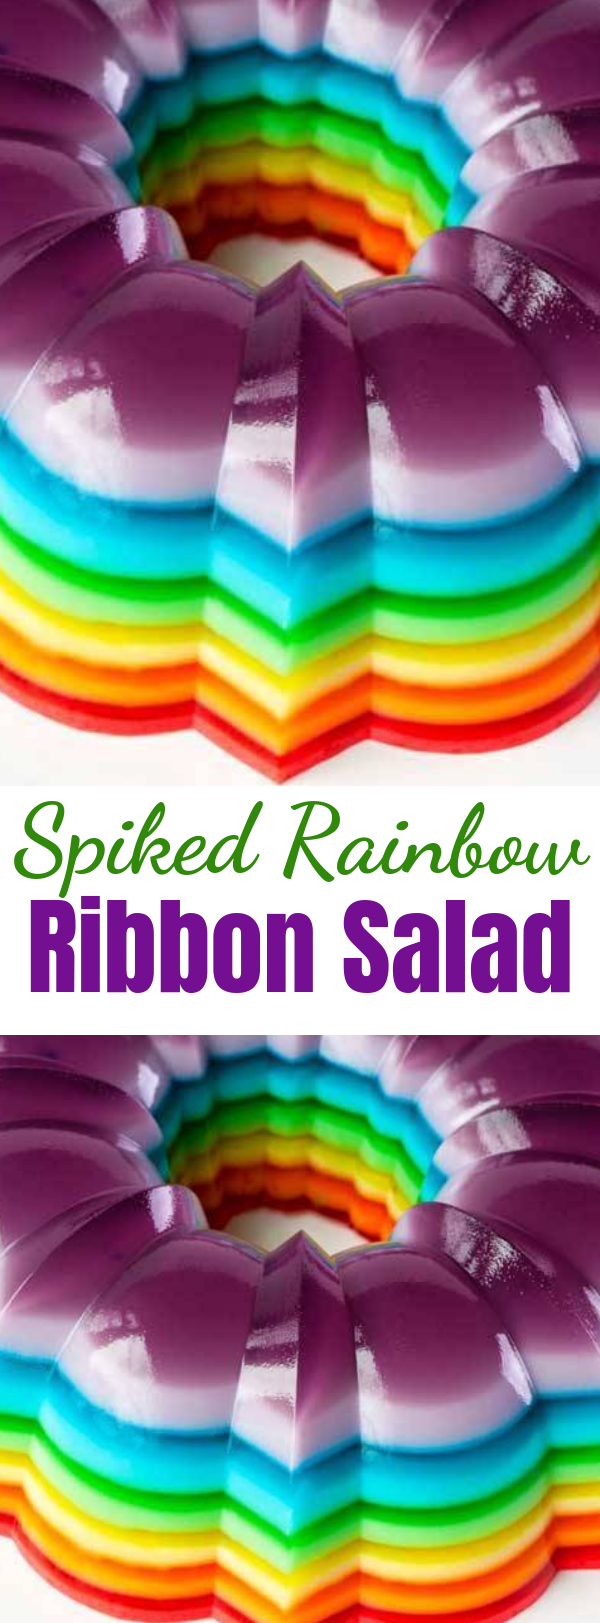 Spiked Rainbow Ribbon Salad - This Spiked Rainbow Ribbon Salad takes the classic layered gelatin and turns it into the life of the party by adding of your favorite flavored vodka or rum! #recipes #recipe #jello #jellorecipes #jellomolds #rainbowjello #desserts #rainbowdesserts